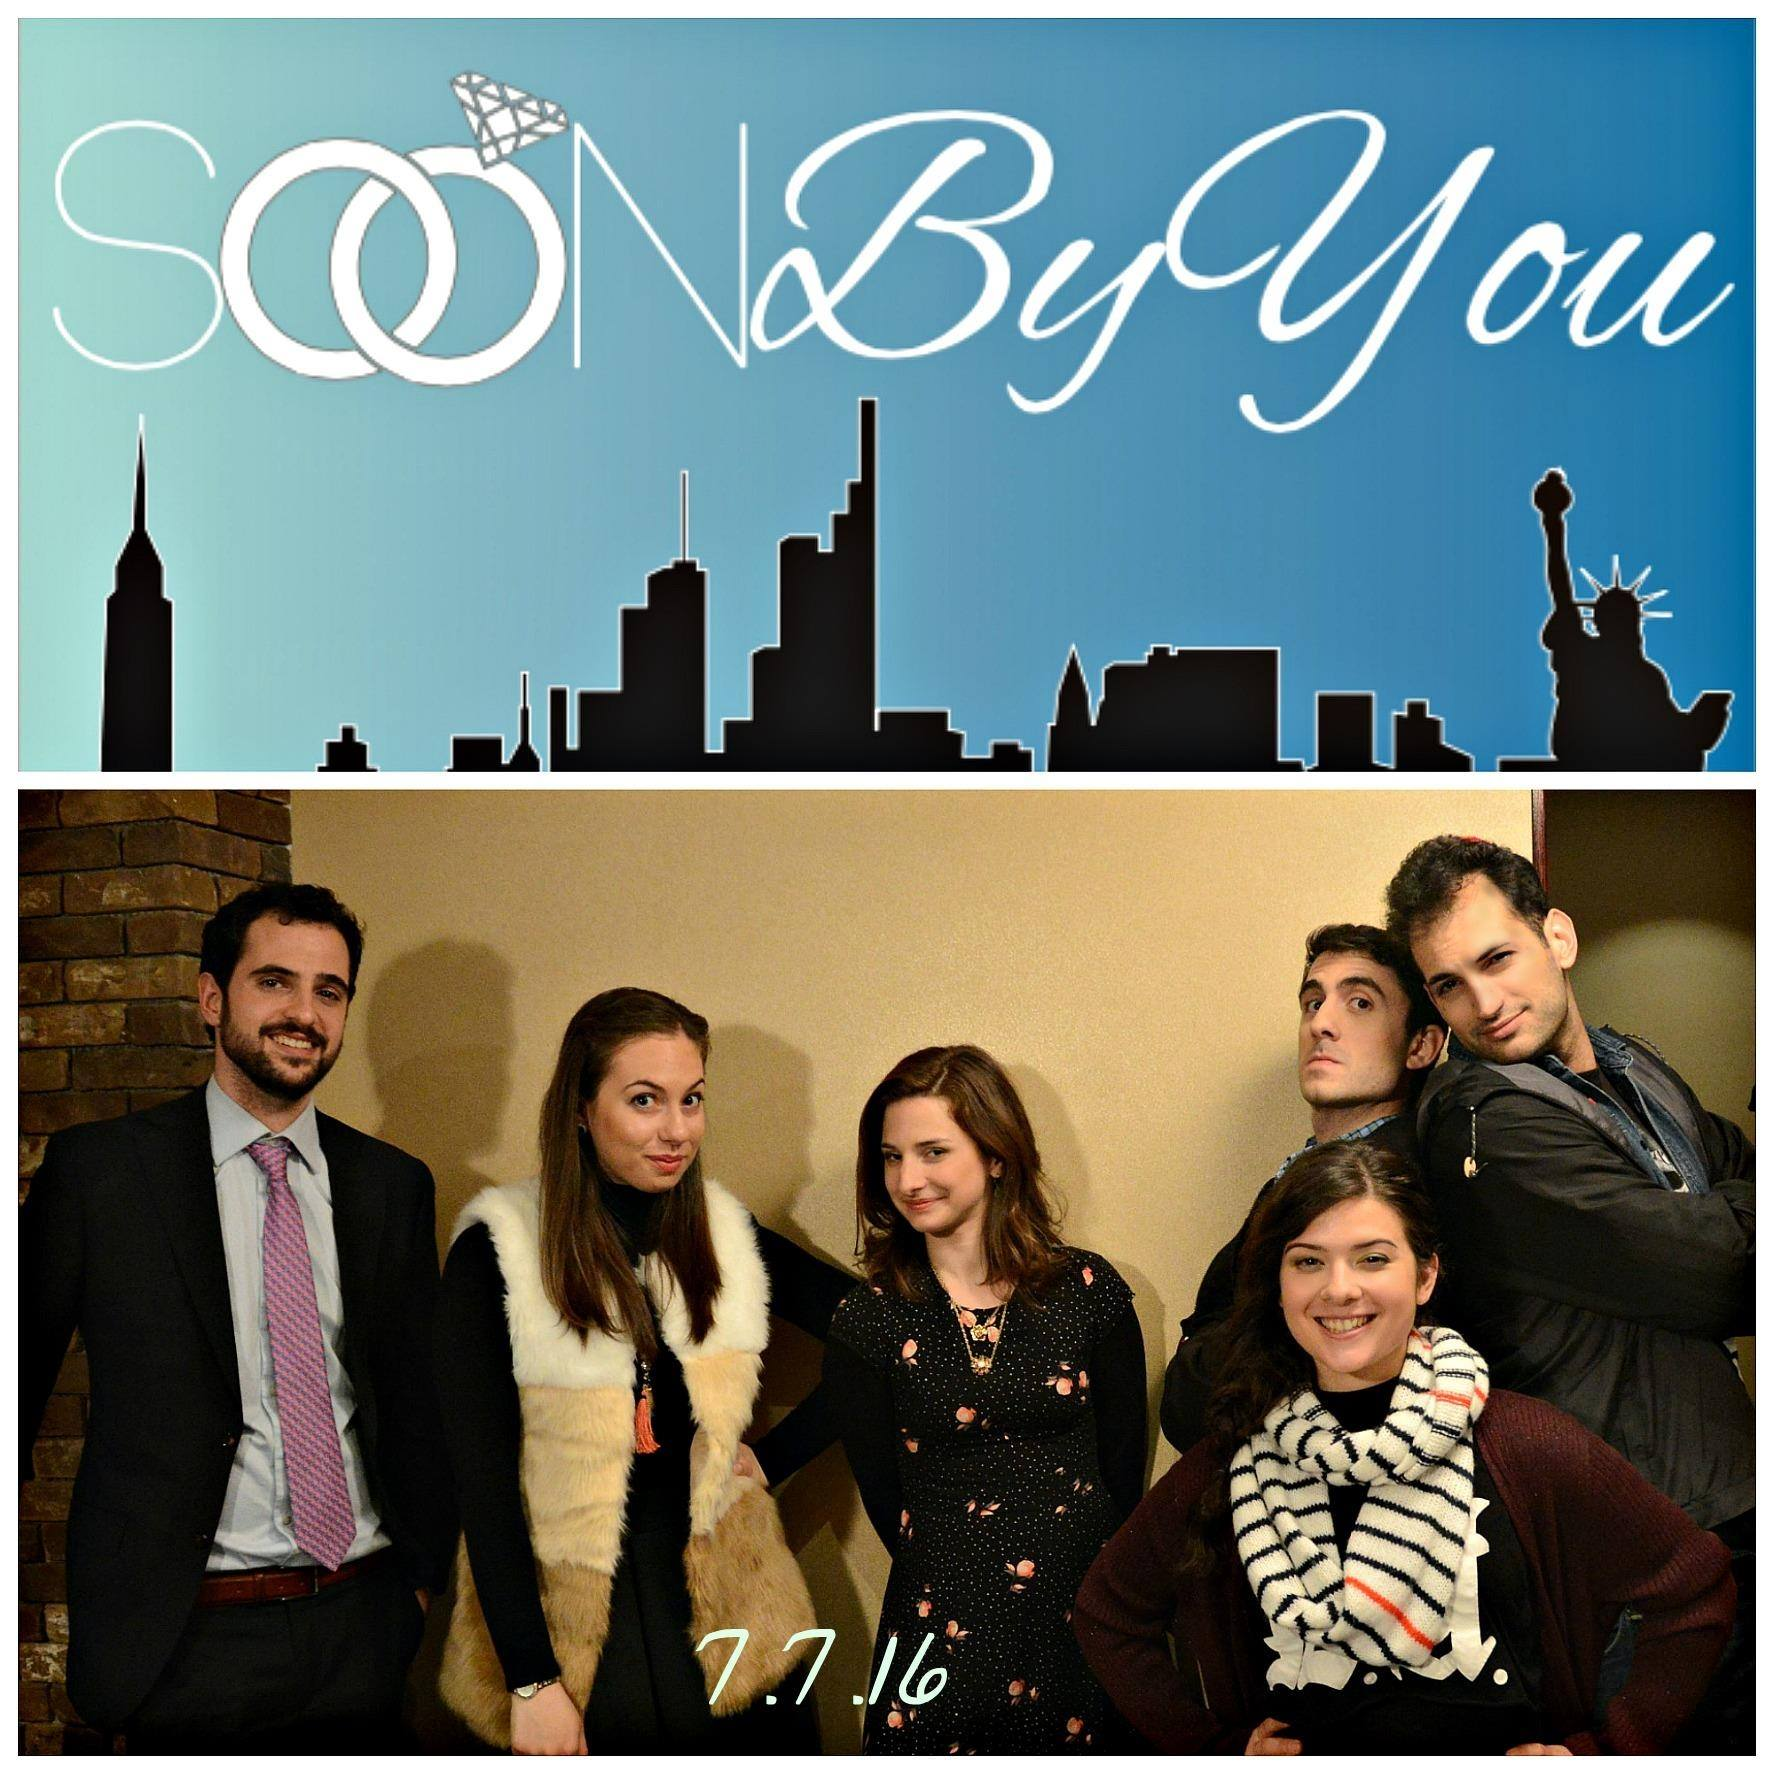 Soon by you web series